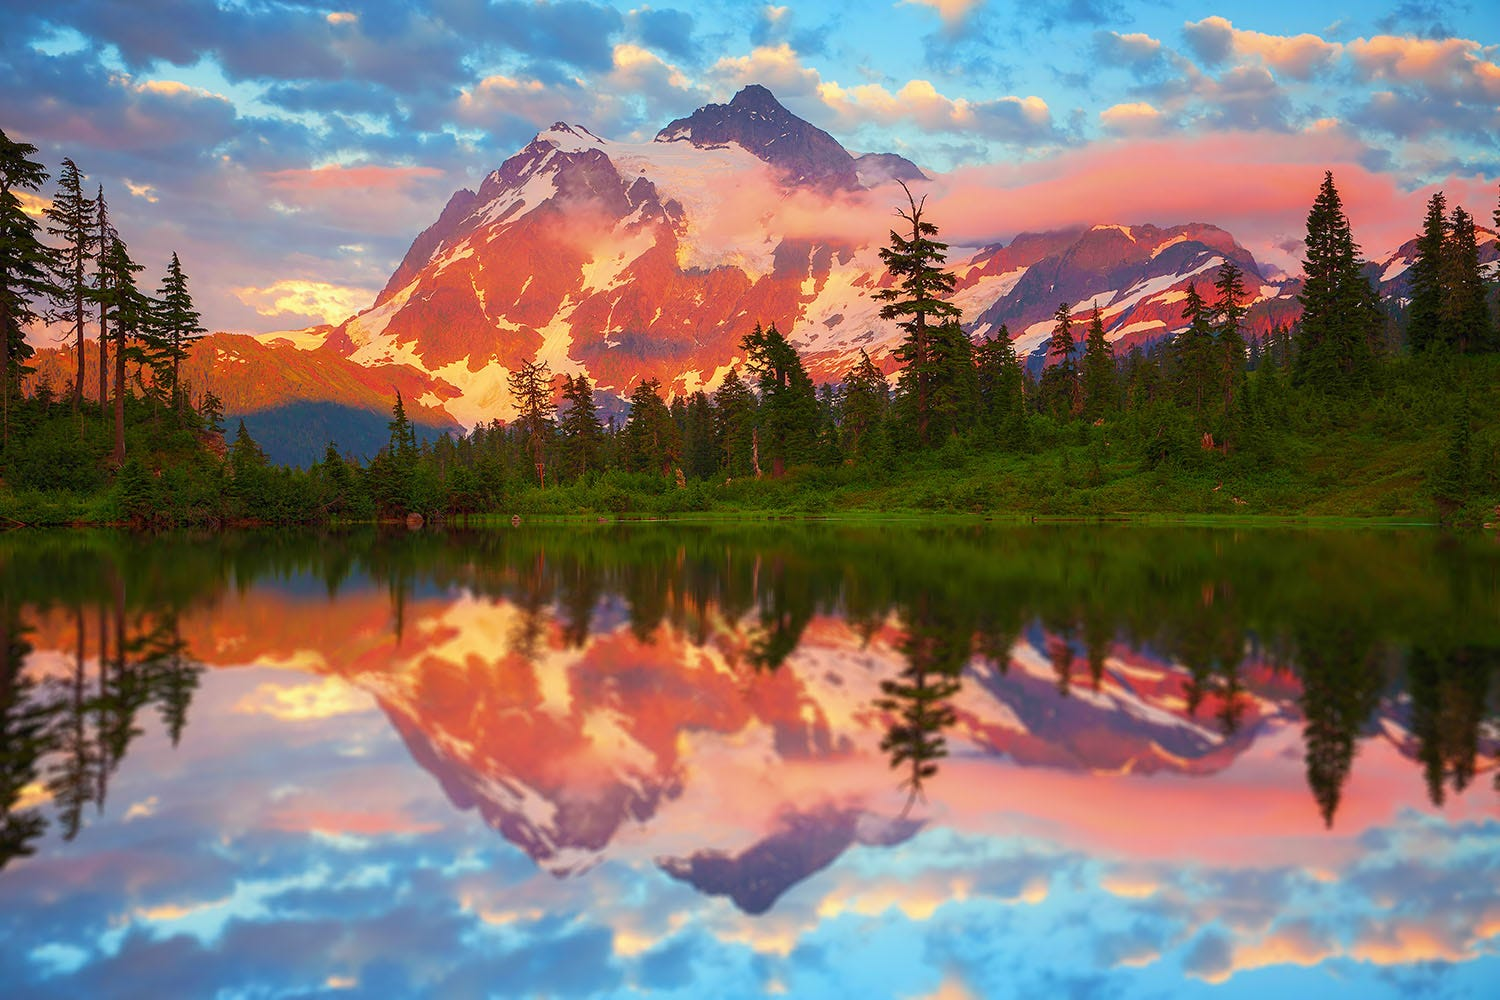 North Cascades National Park has some of the best views in the Pacific Northwest